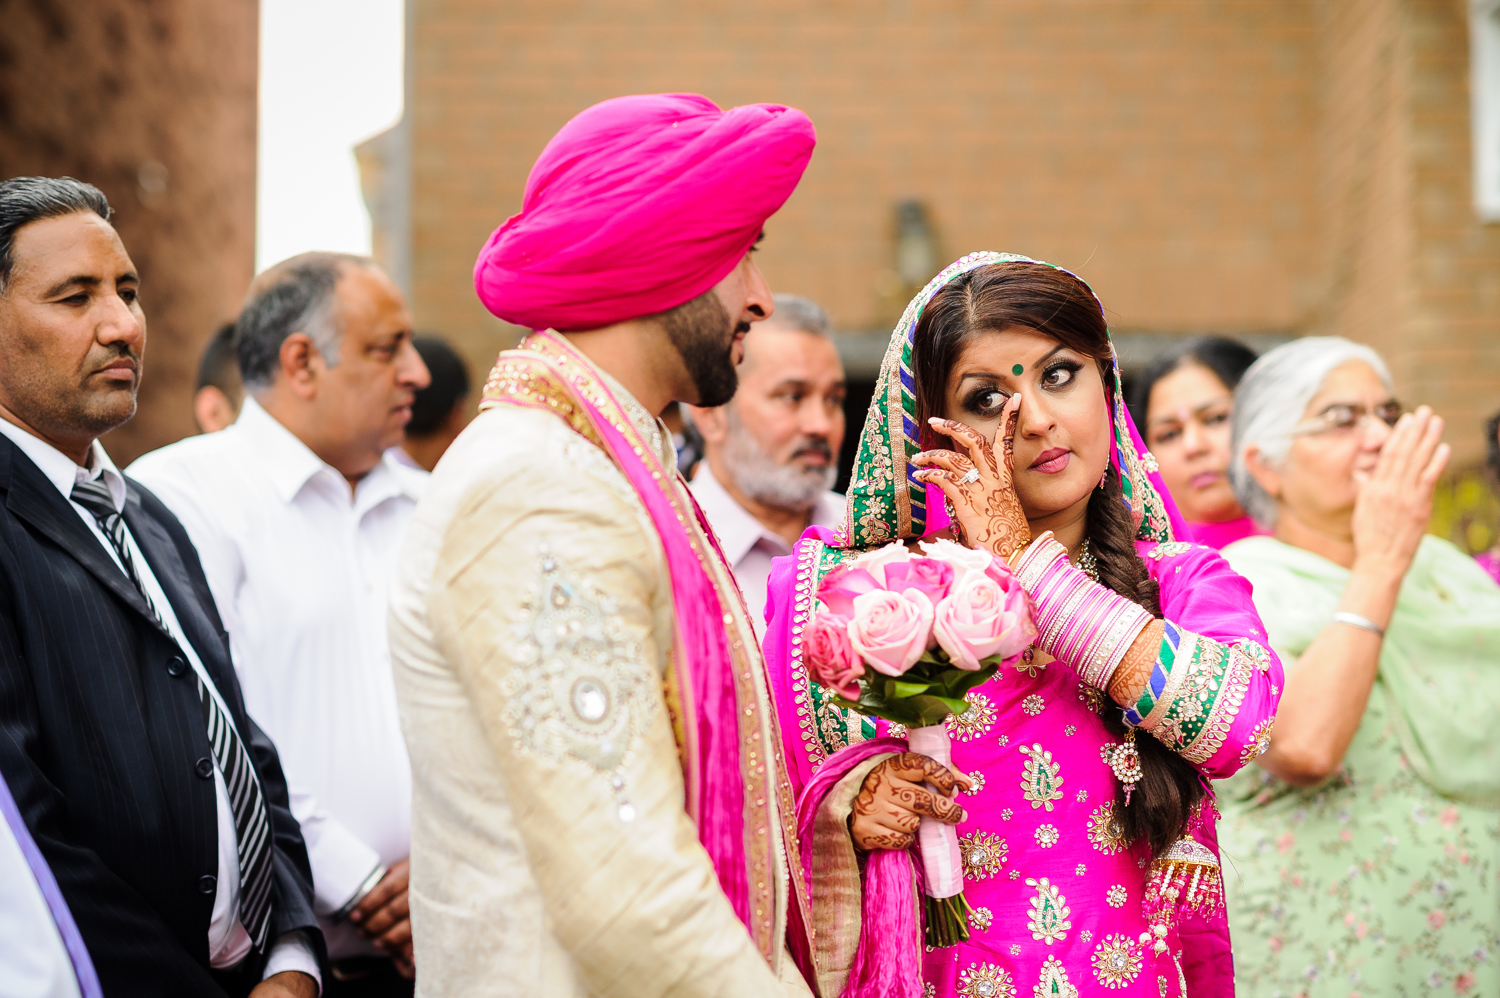 Nav-and-Rav-Sikh-Wedding-0029.JPG